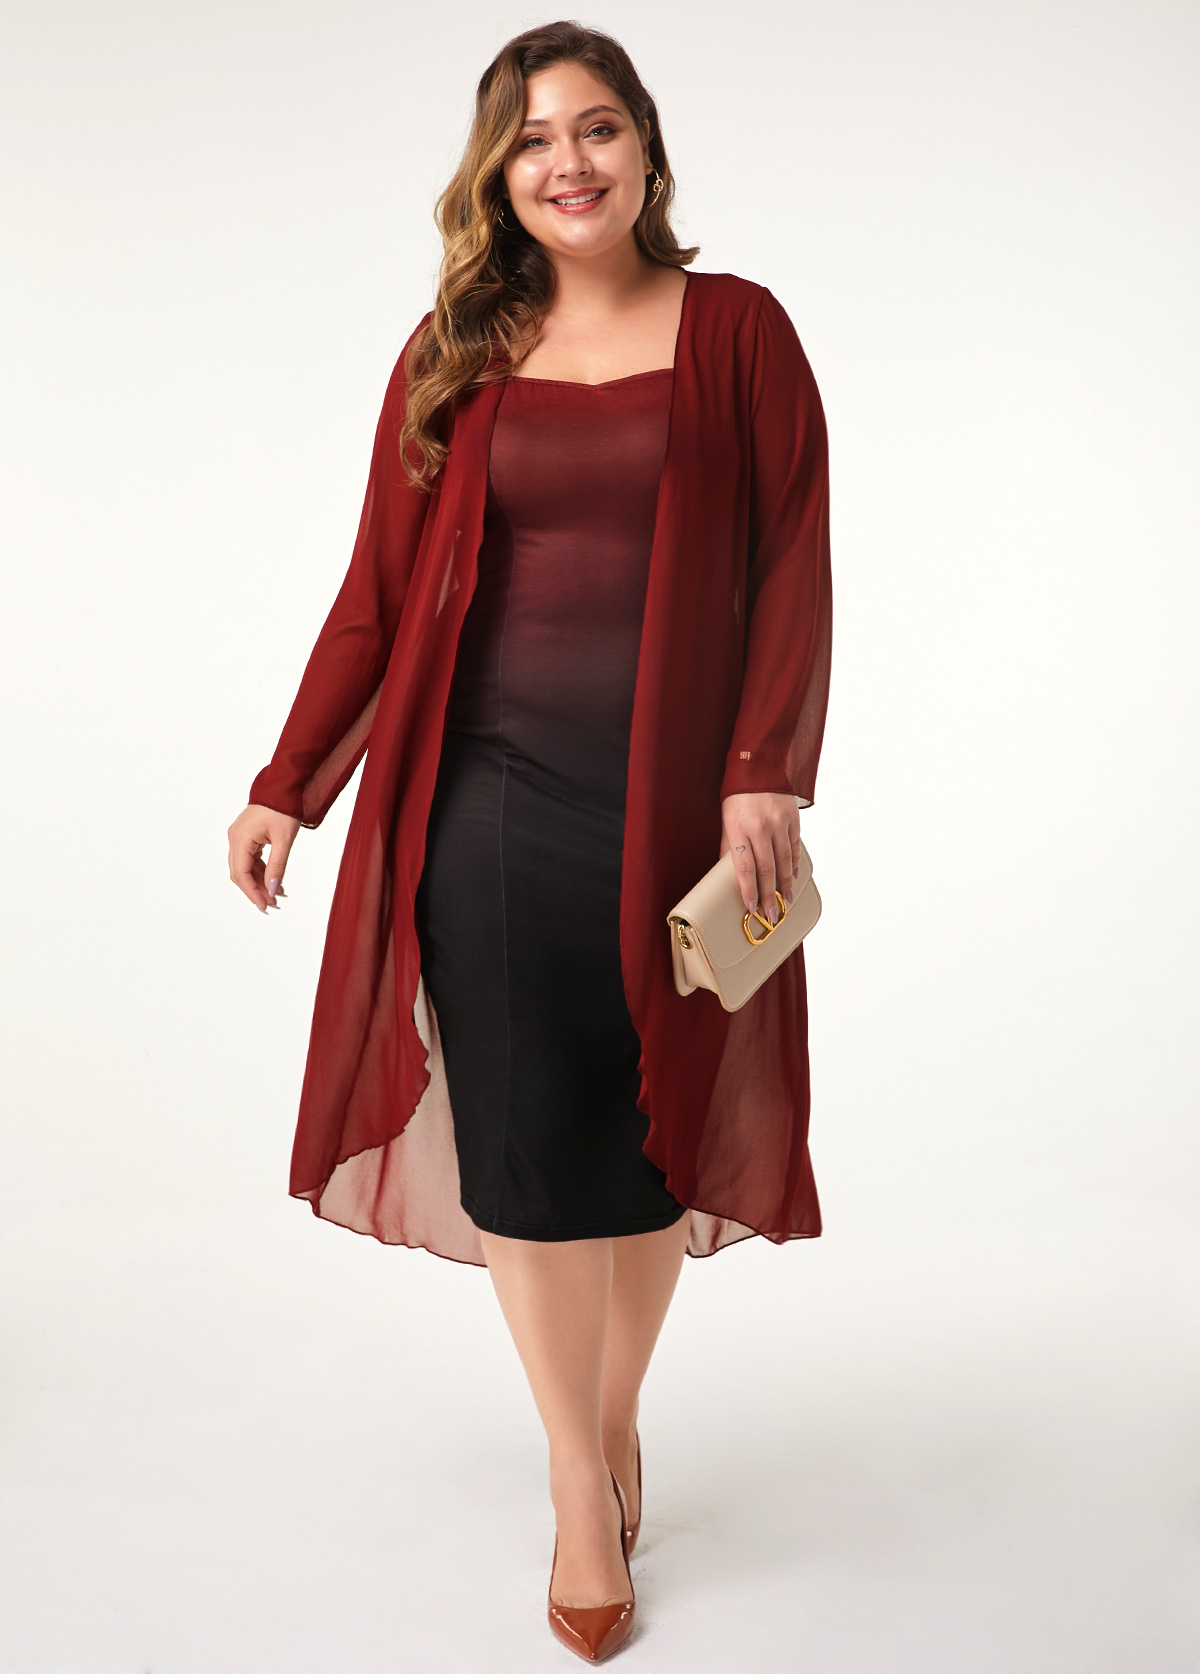 ROTITA Chiffon Cardigan and Sleeveless Plus Size Dress